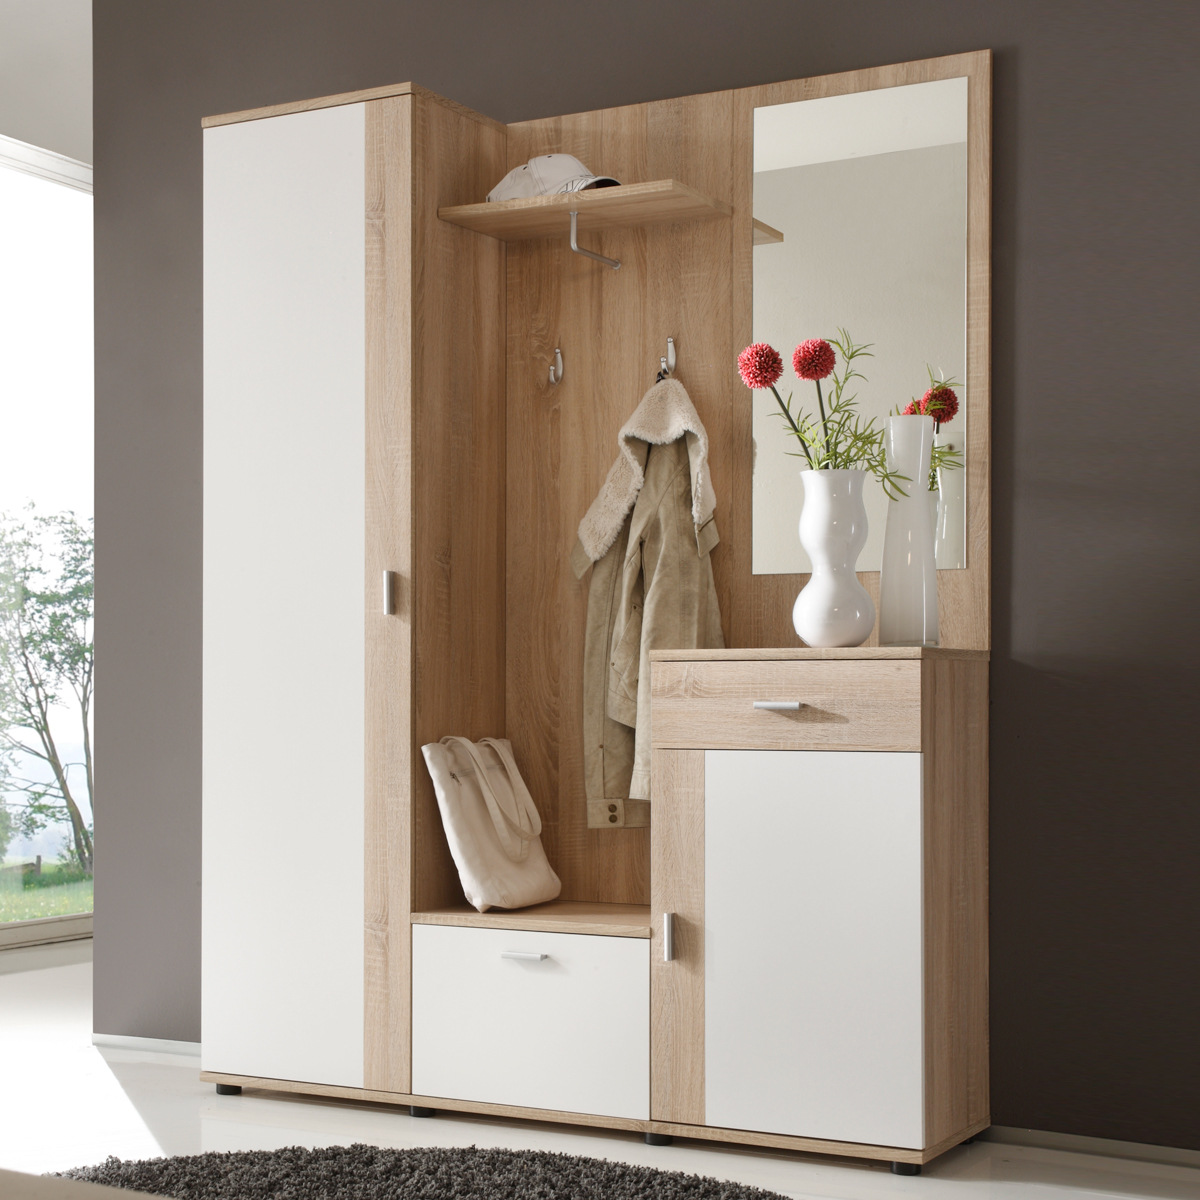 garderoben set patent spiegel schuhschrank kommode sonoma eiche wei ebay. Black Bedroom Furniture Sets. Home Design Ideas